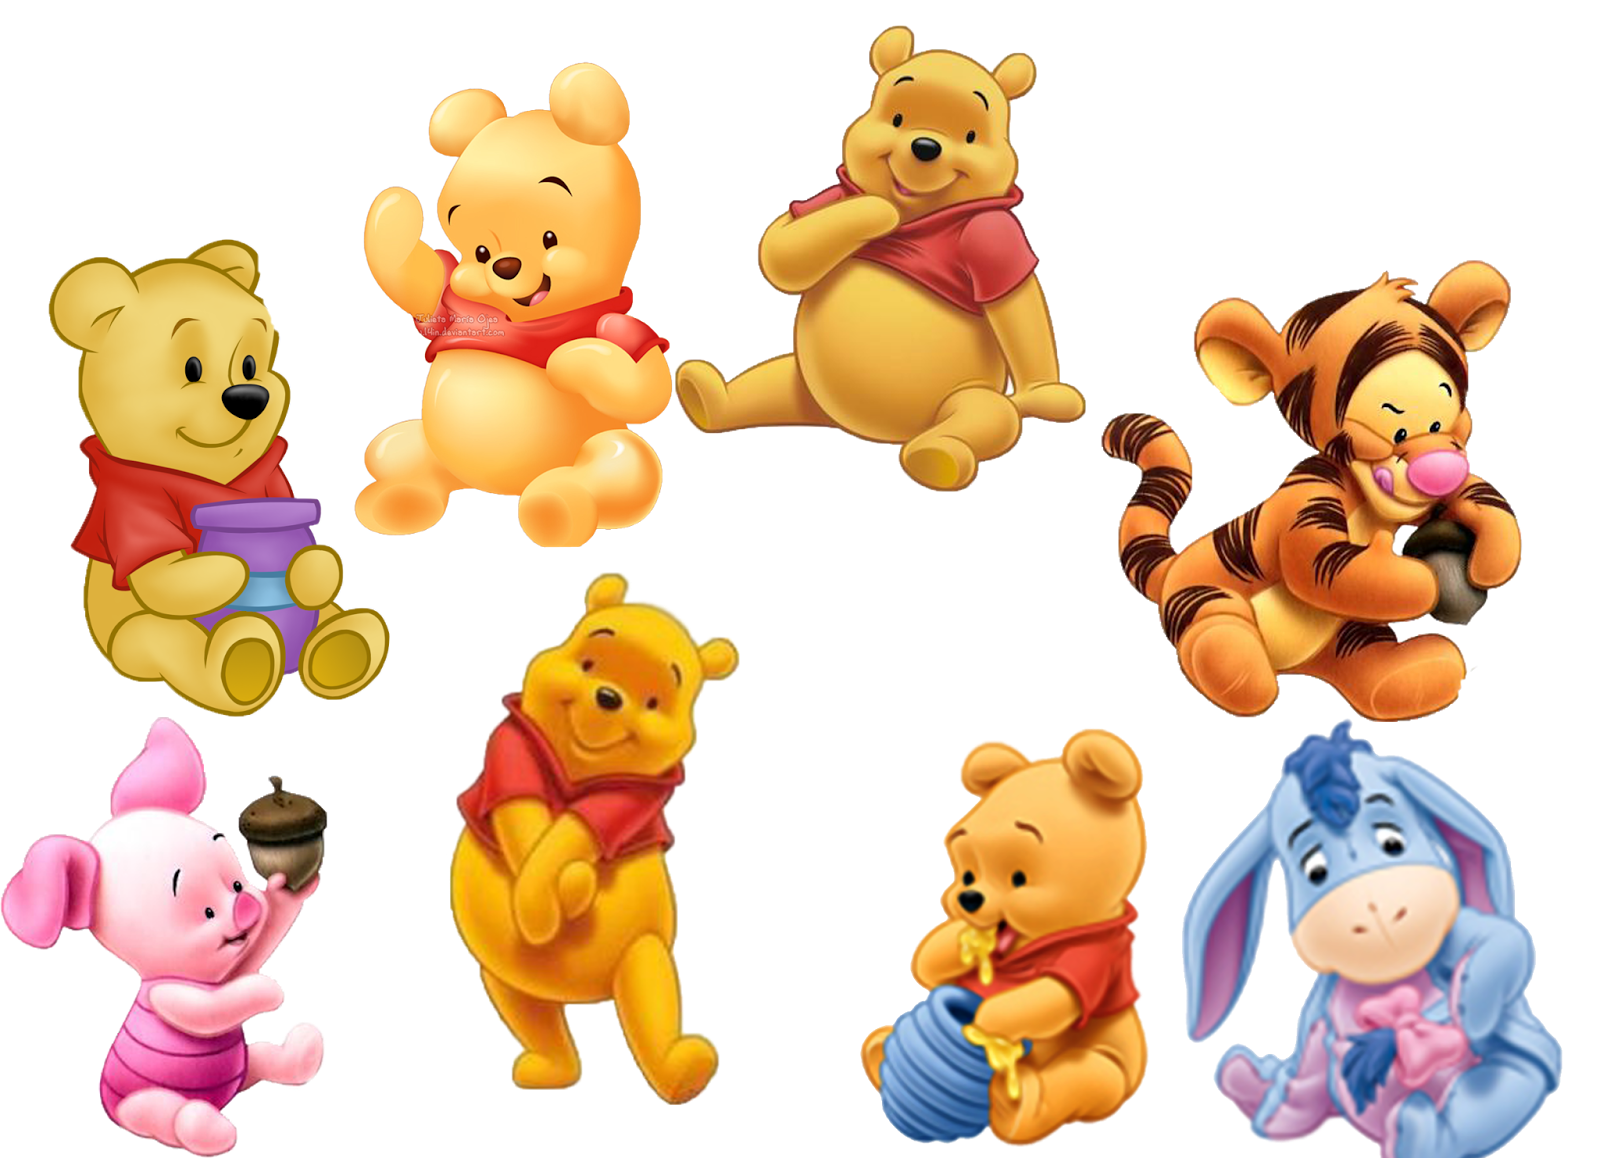 pooh and friends winnie the pooh and friends pictures